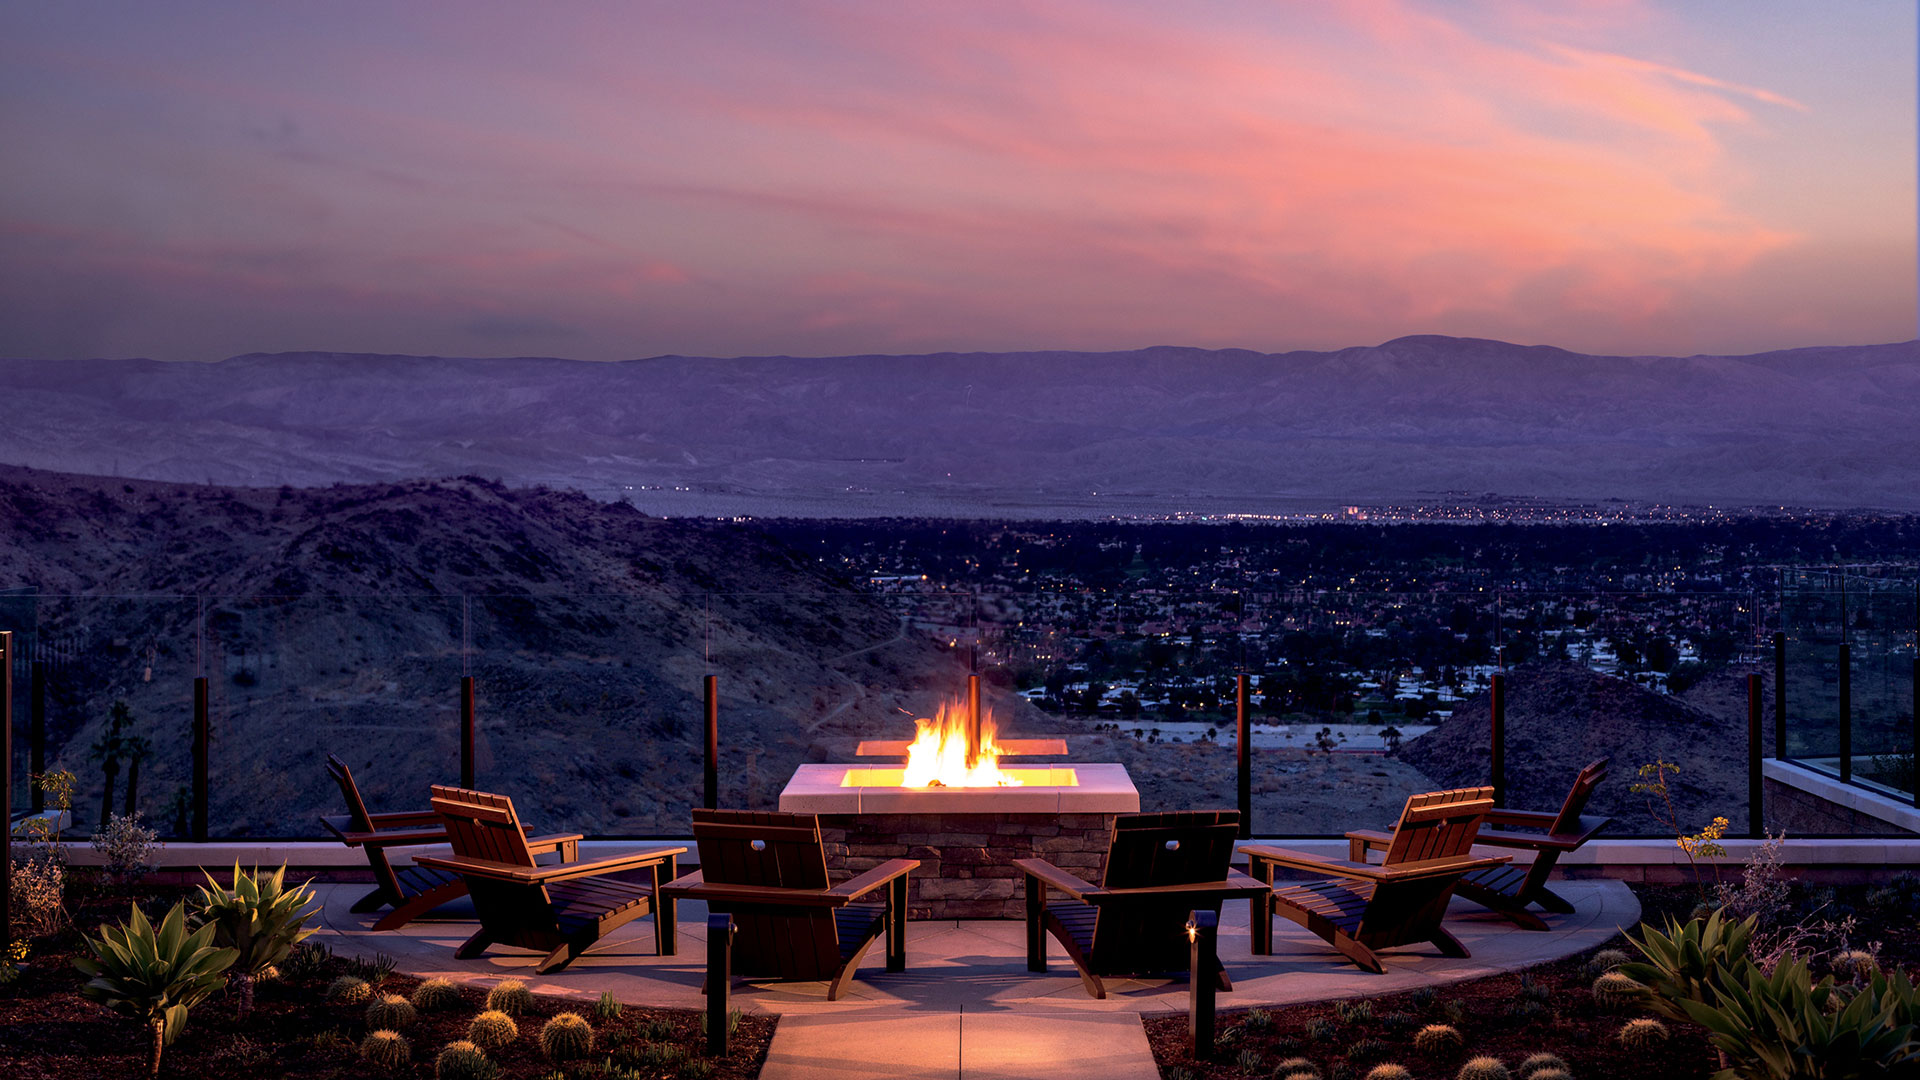 sunset at the ritz-carlton rancho mirage